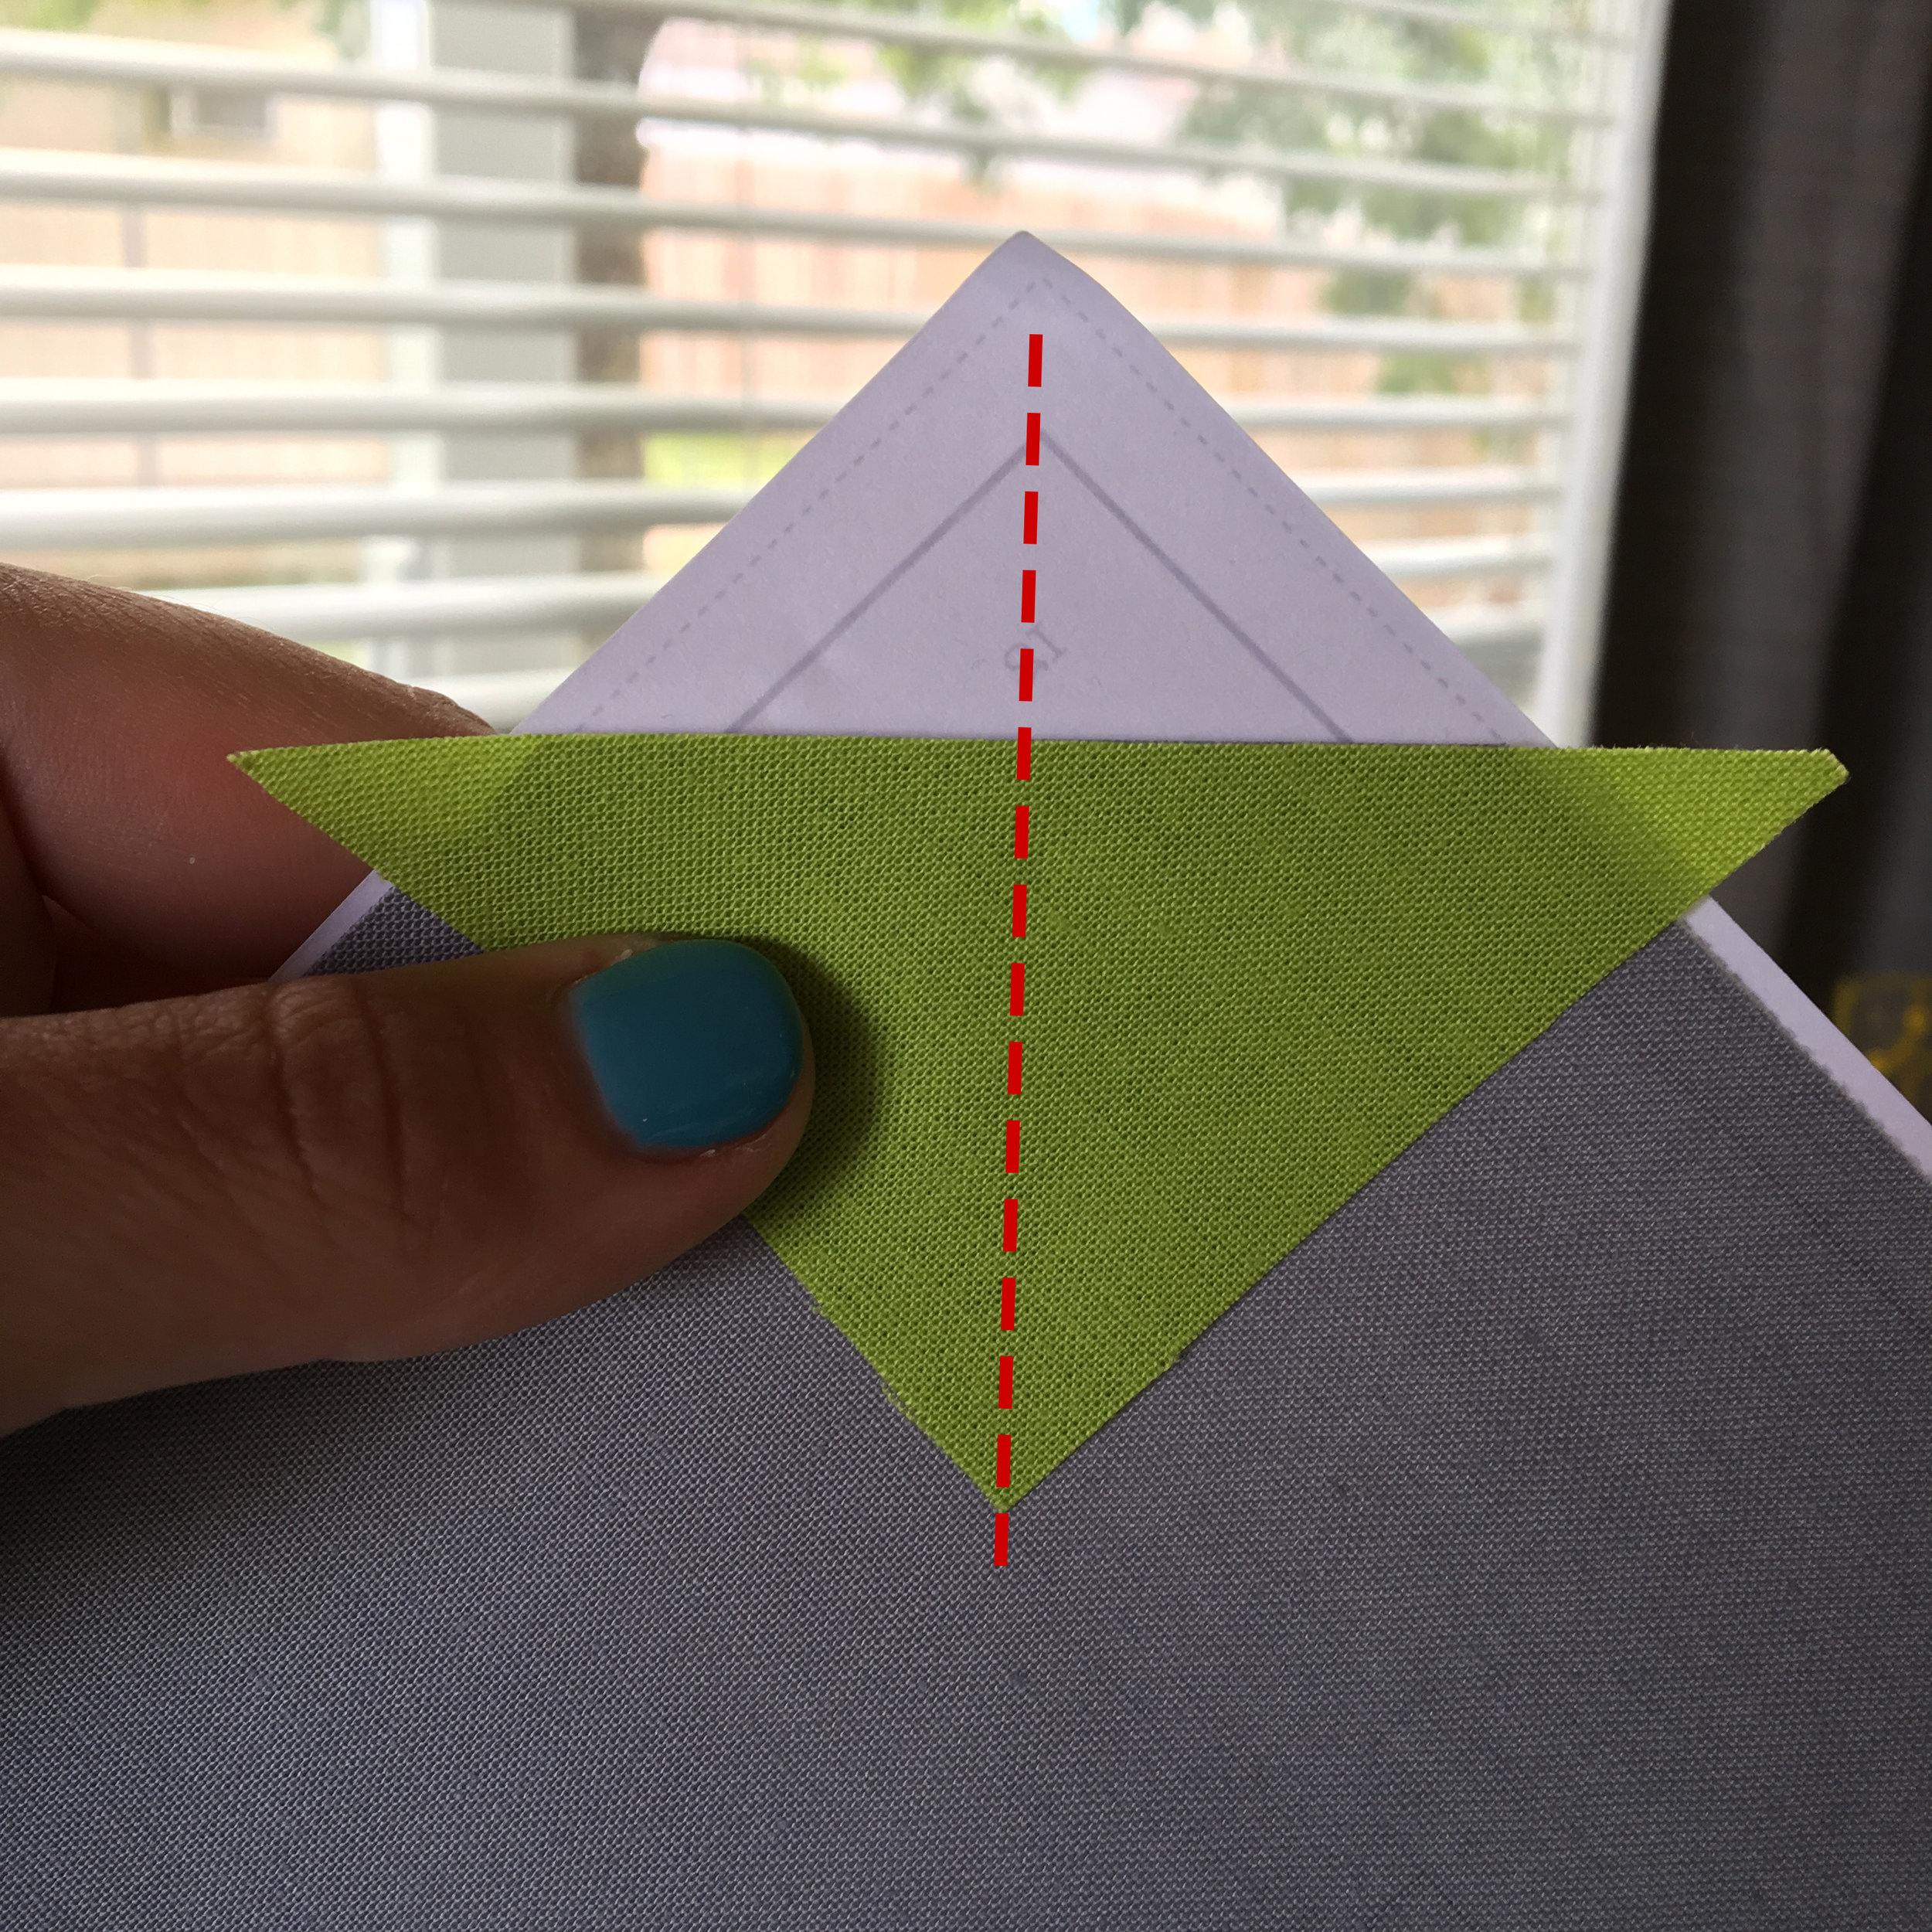 When aligning a triangle piece along its bias side as illustrated here, imagine a straight line traveling from the corner of the area you will be covering, with the right angle of the triangle you're adding, like shown above. Use this technique with all applicable units.